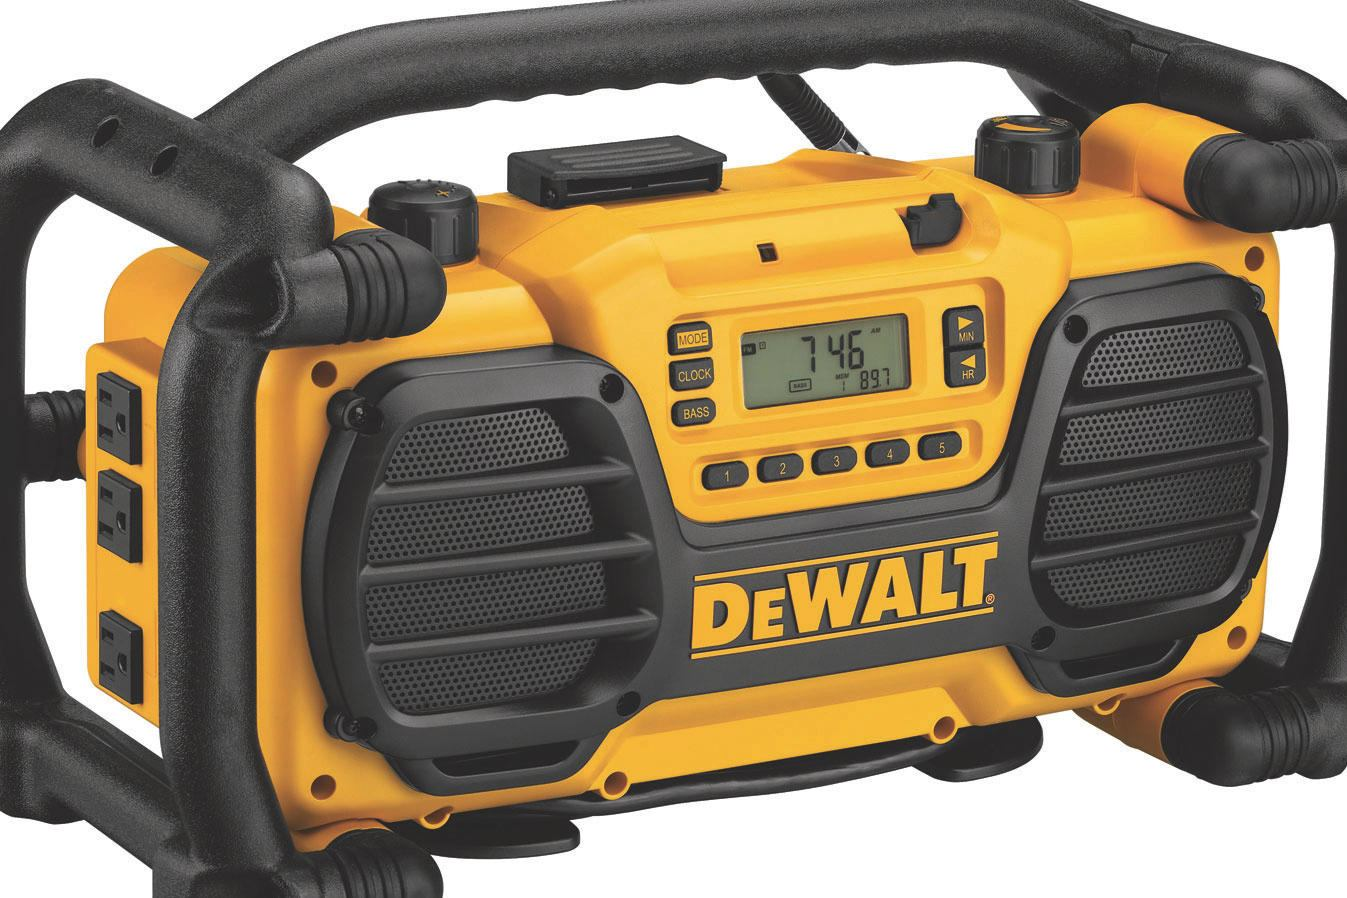 Dewalt Dc012 Radio Builder Magazine Products Tools